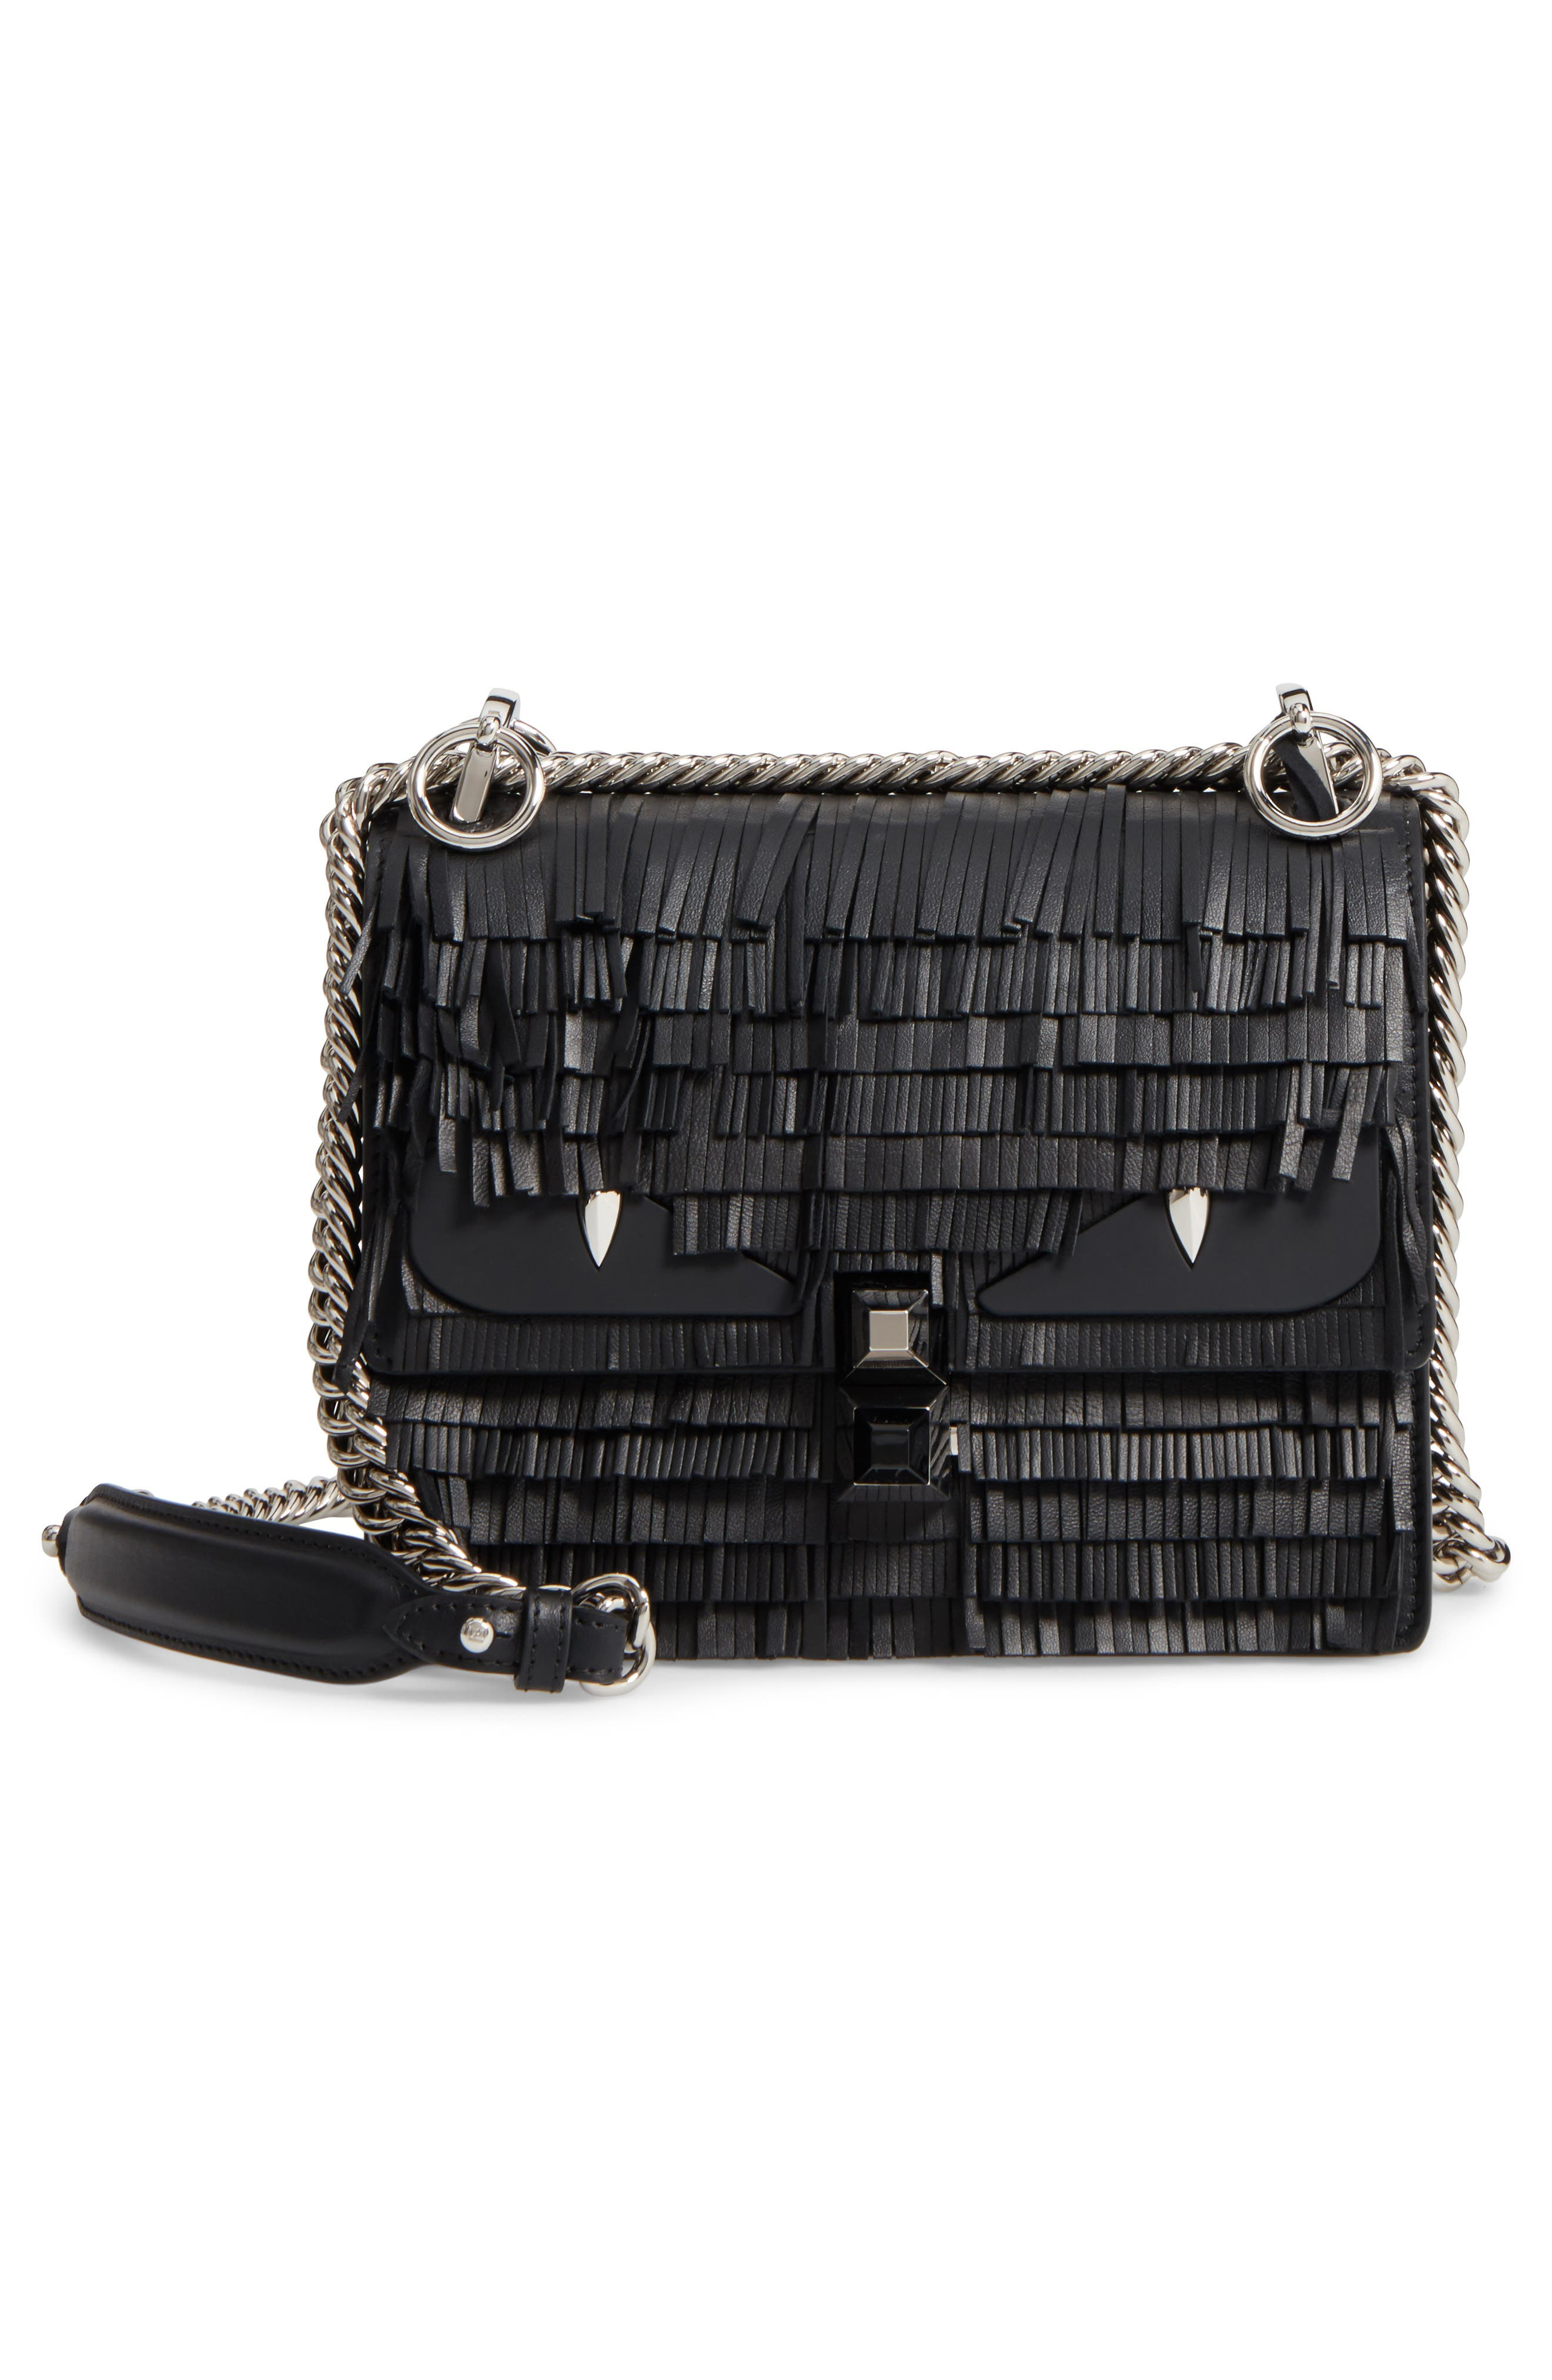 Main Image - Fendi Small Kan I Fringe Monster Calfskin Shoulder Bag